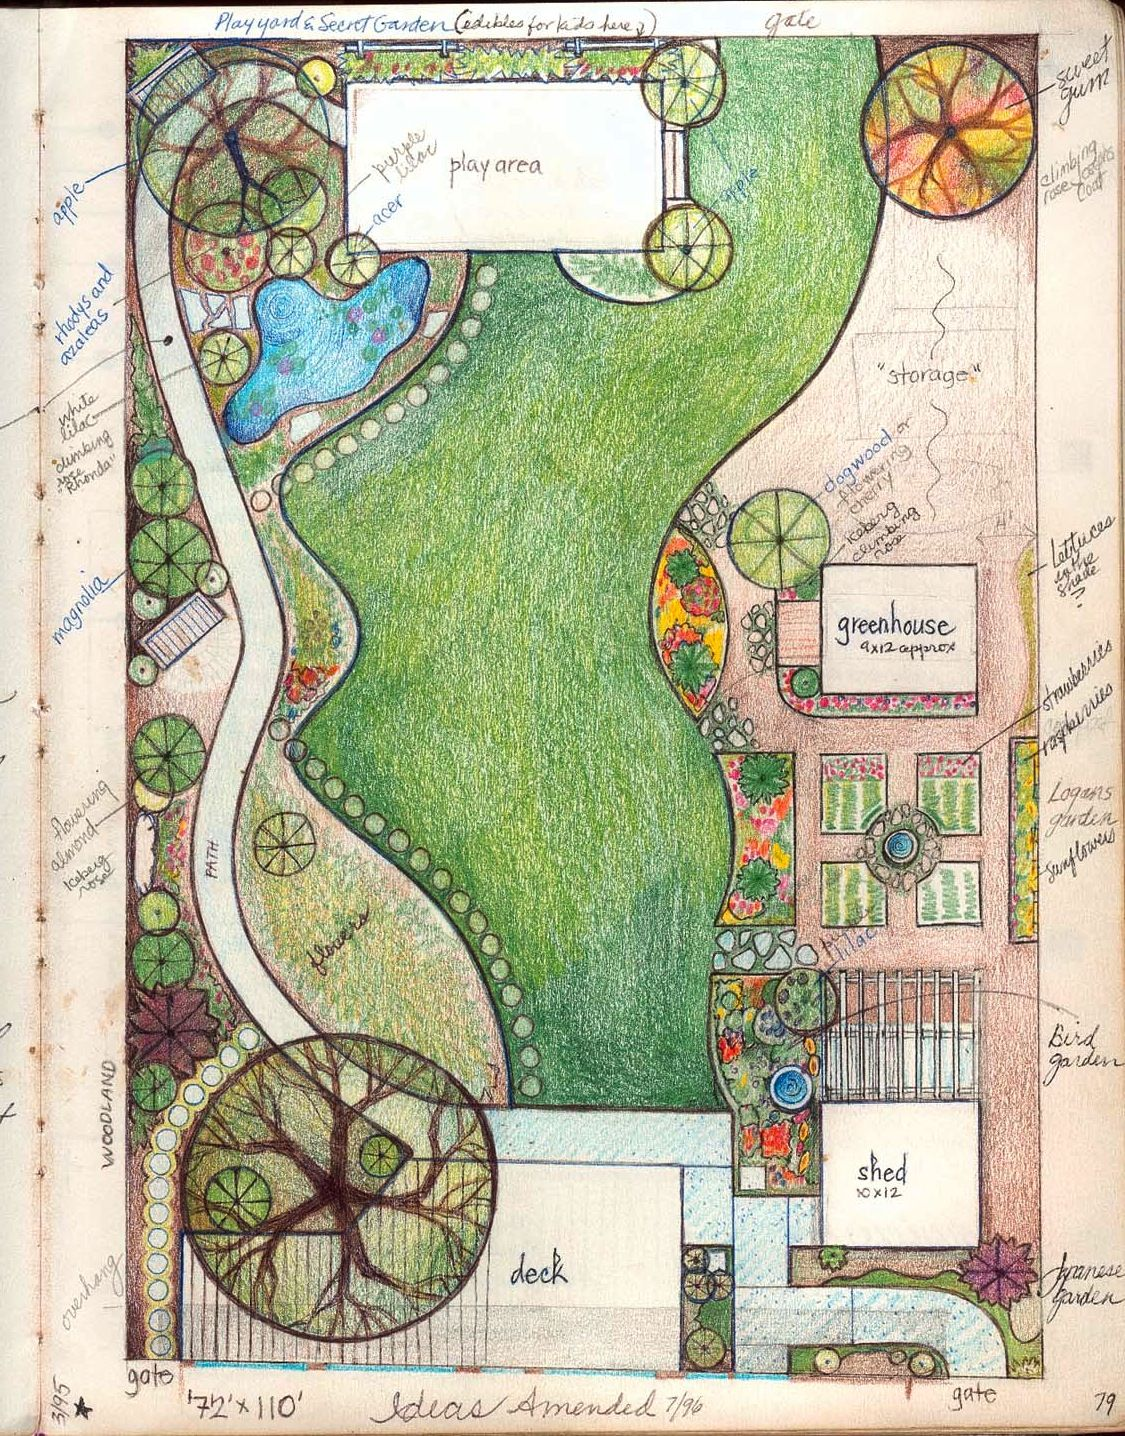 Gardenscaping plans sketches landscape inspiration for Pflanzengestaltung garten